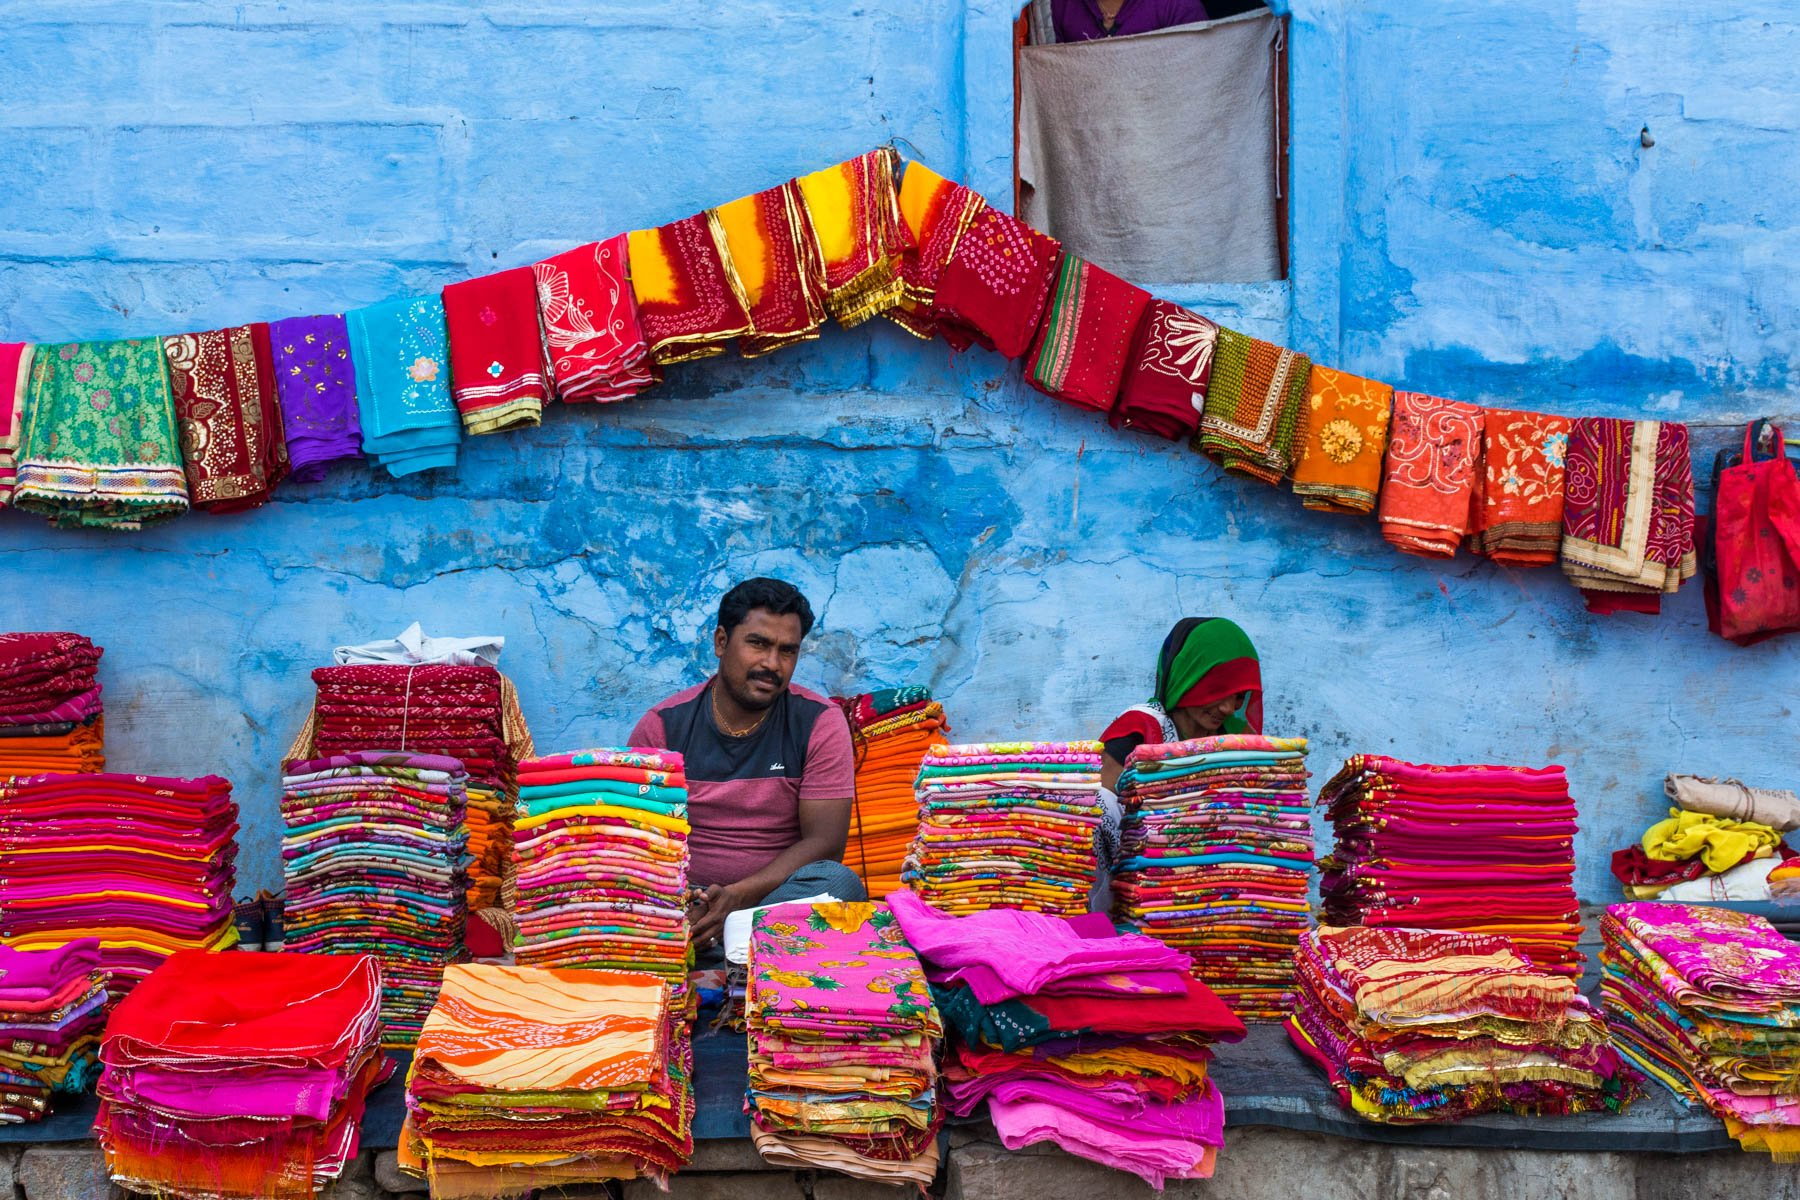 A man selling fabric in front of a blue building